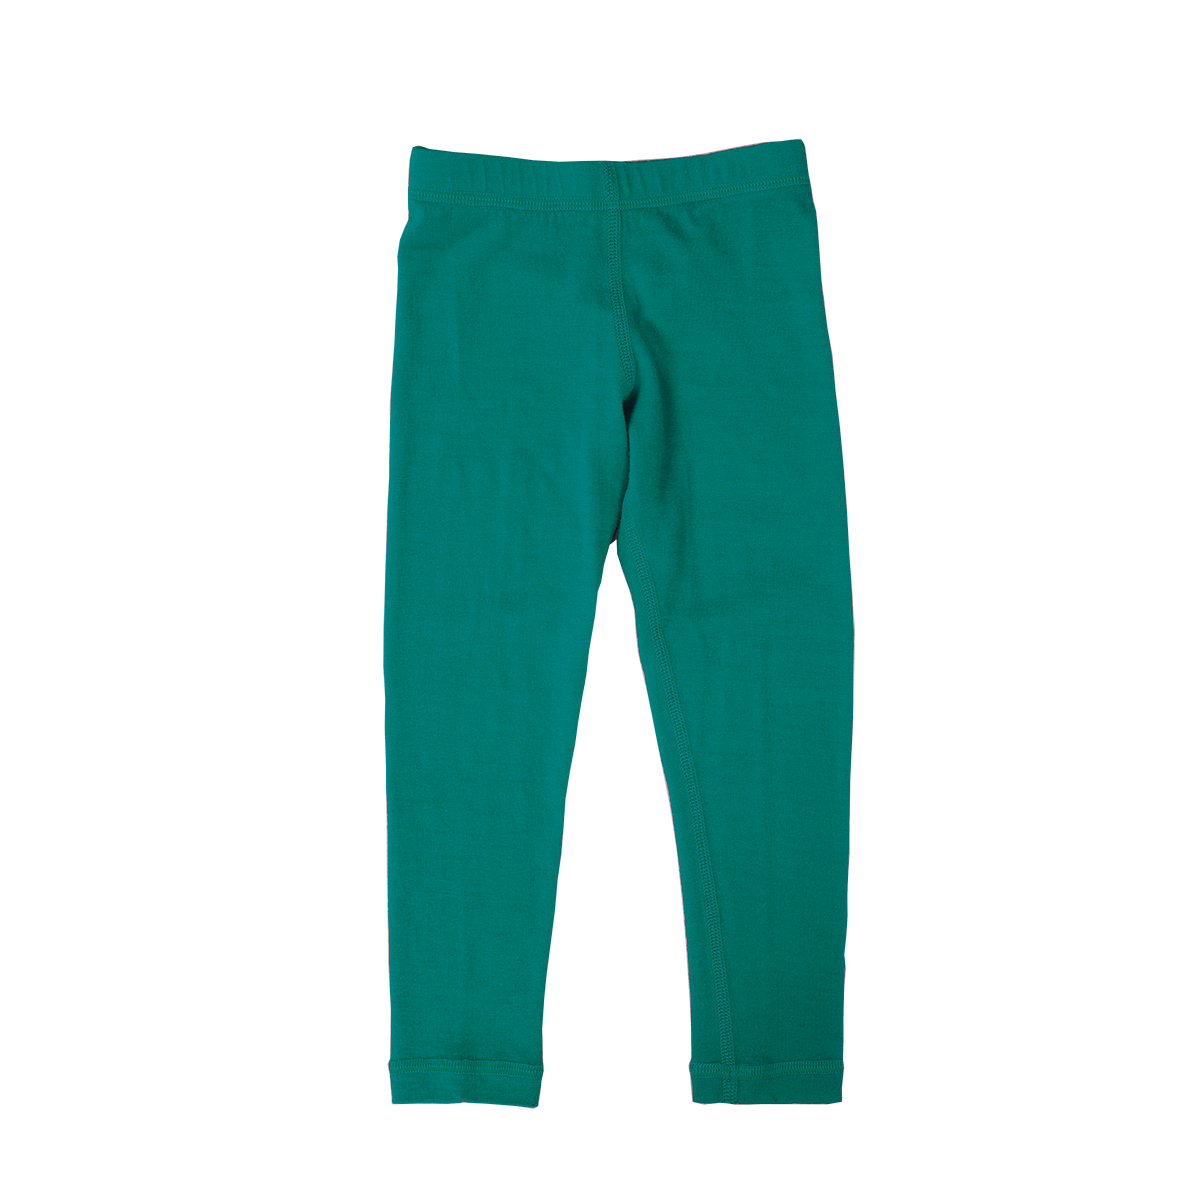 Iksplor Kids' Merino Wool Thermal Base Layer Bottoms/Pants - Green